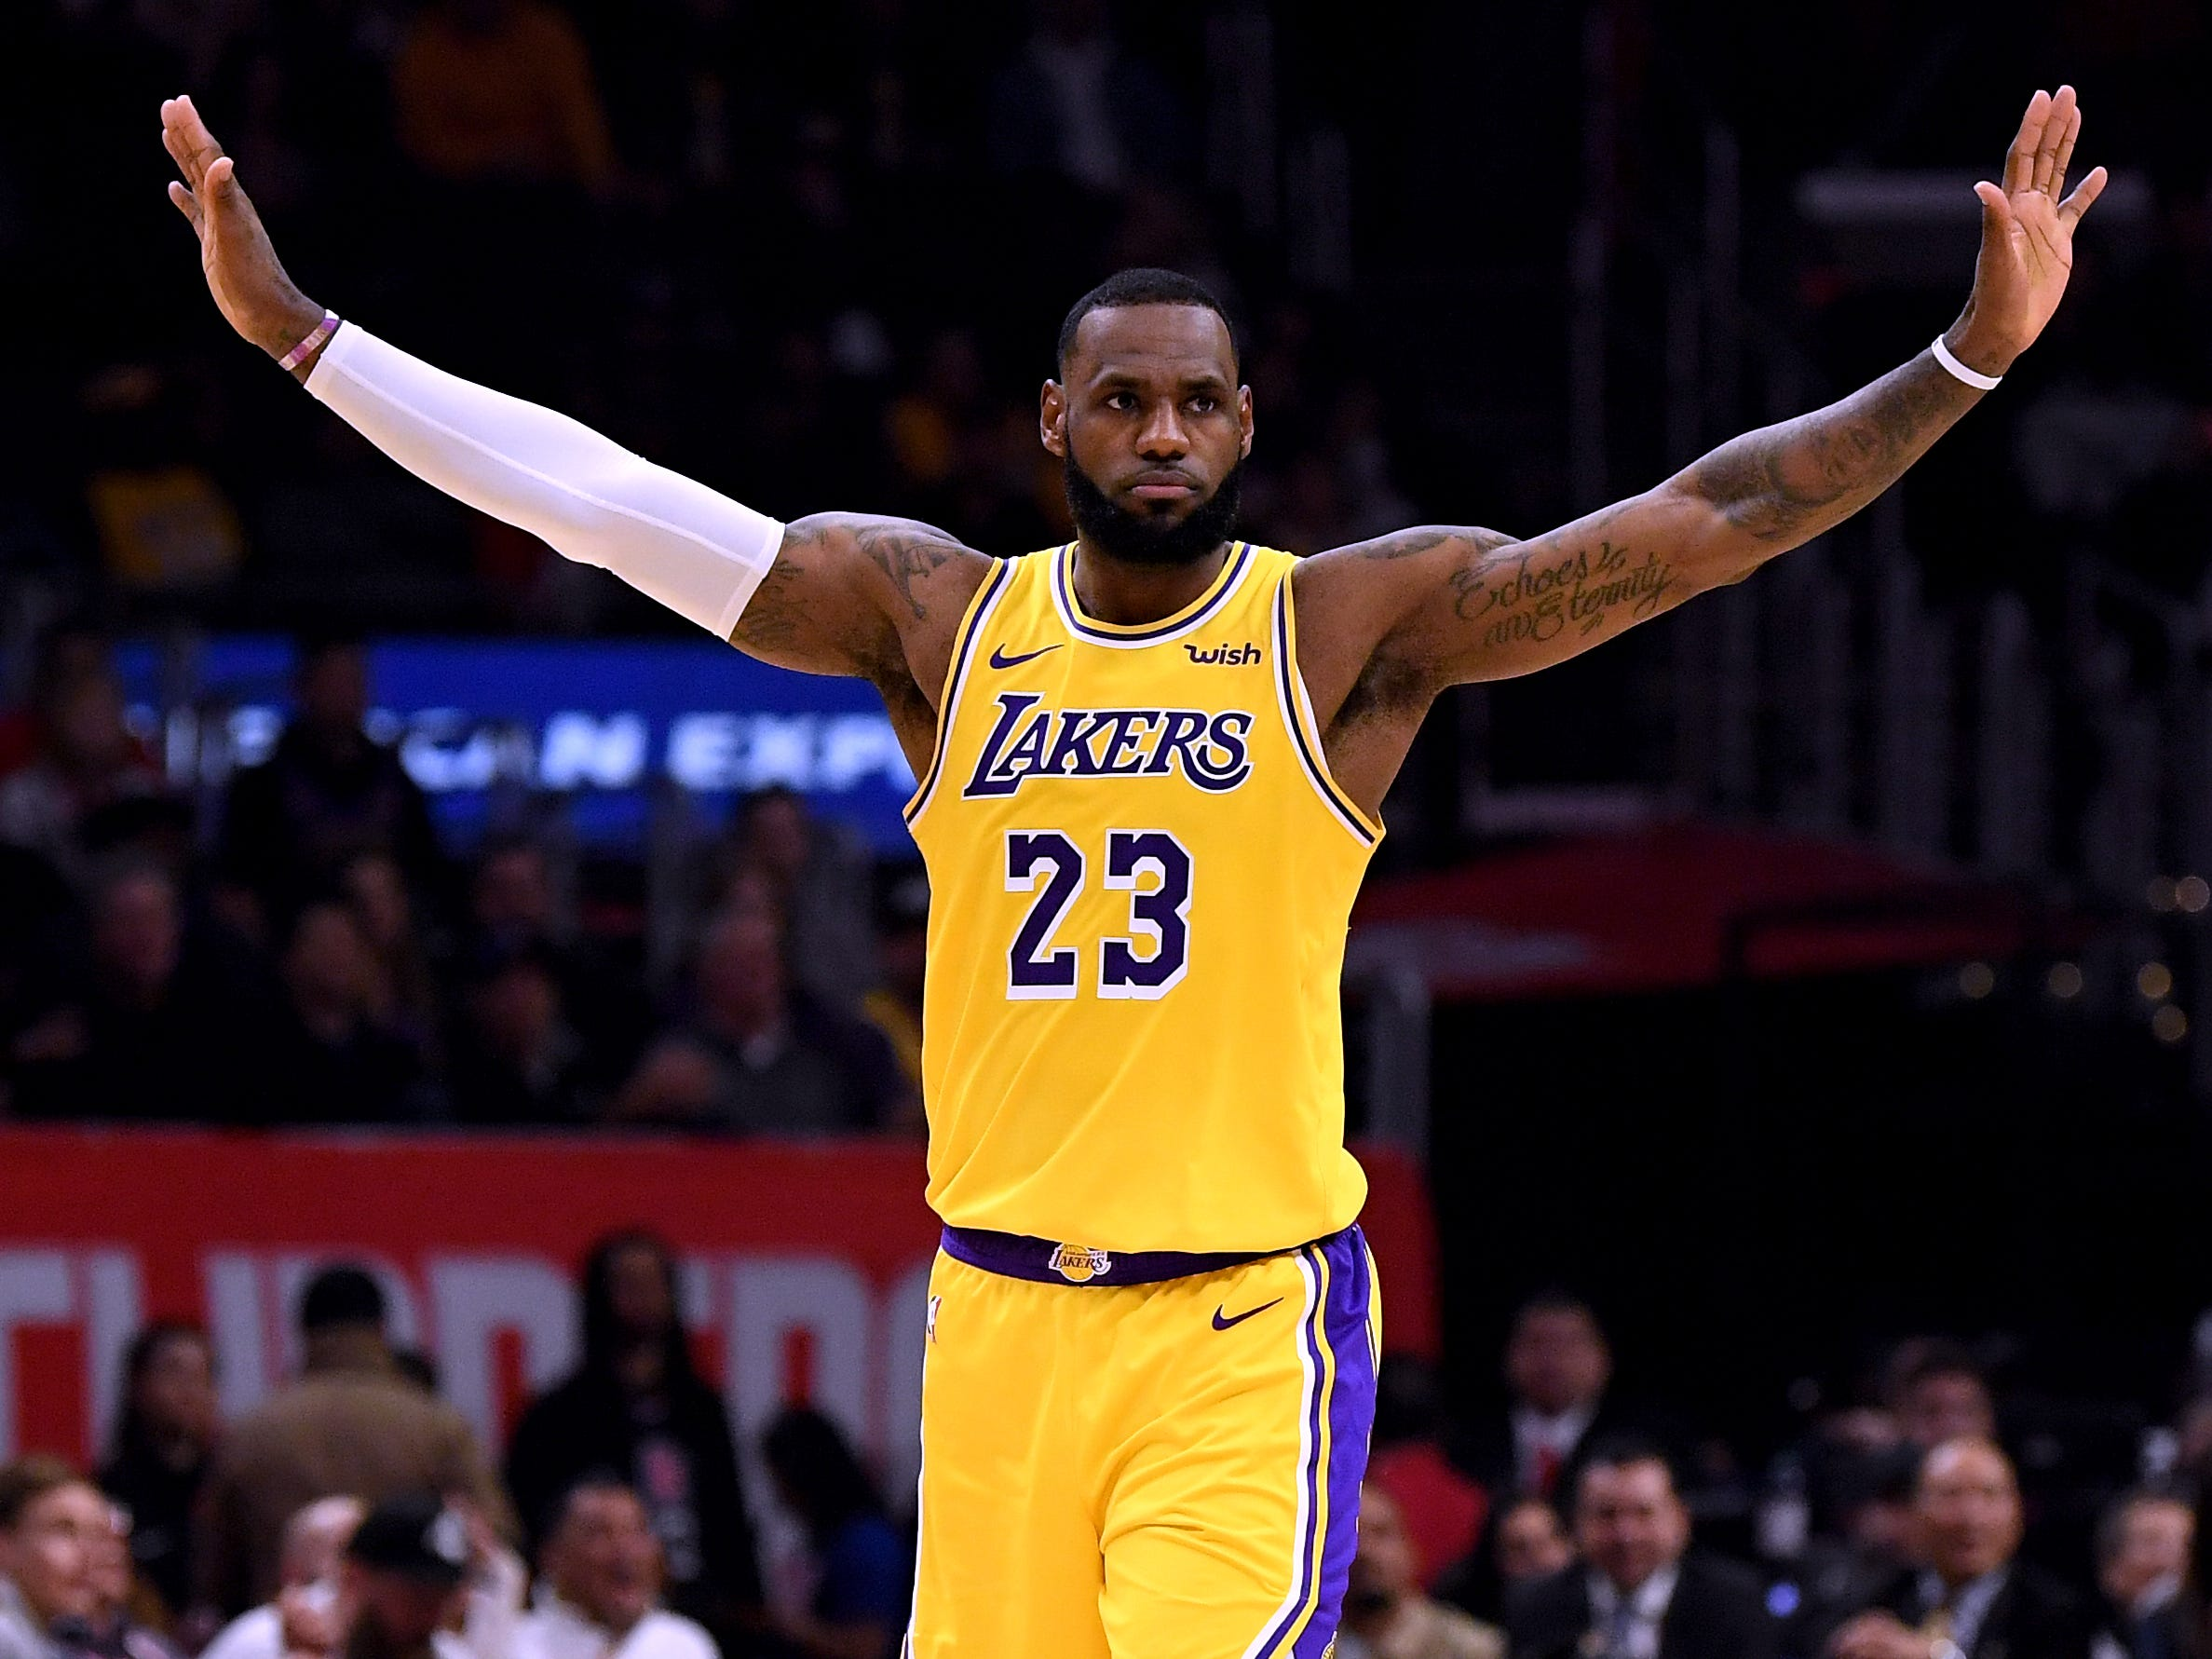 Jan. 31, 2019: James missed 17 games, but after the Lakers stumbled to a 6-11 record without him, he returned at just the right time.